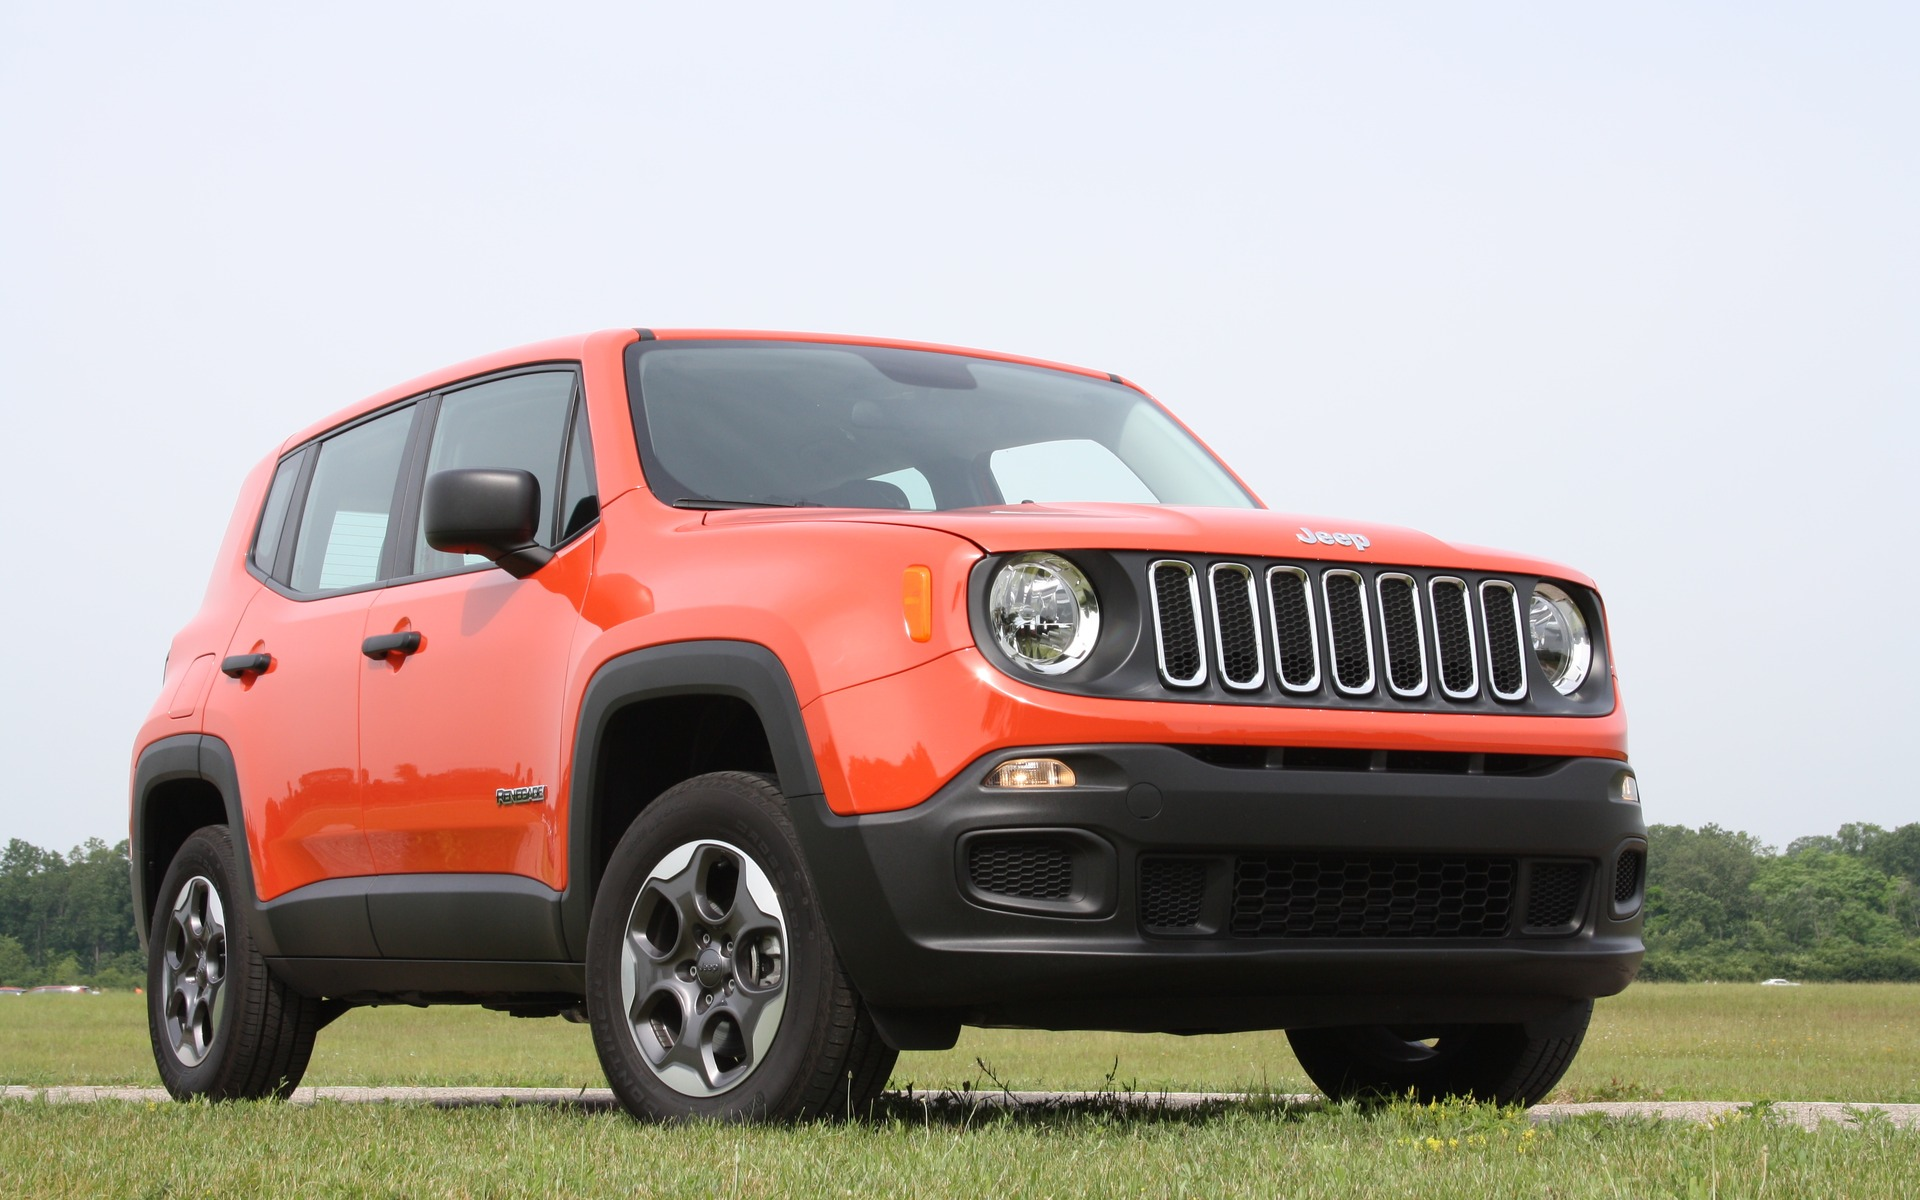 recall notice for the chrysler 200 the jeep cherokee the jeep renegade and the ram promaster. Black Bedroom Furniture Sets. Home Design Ideas